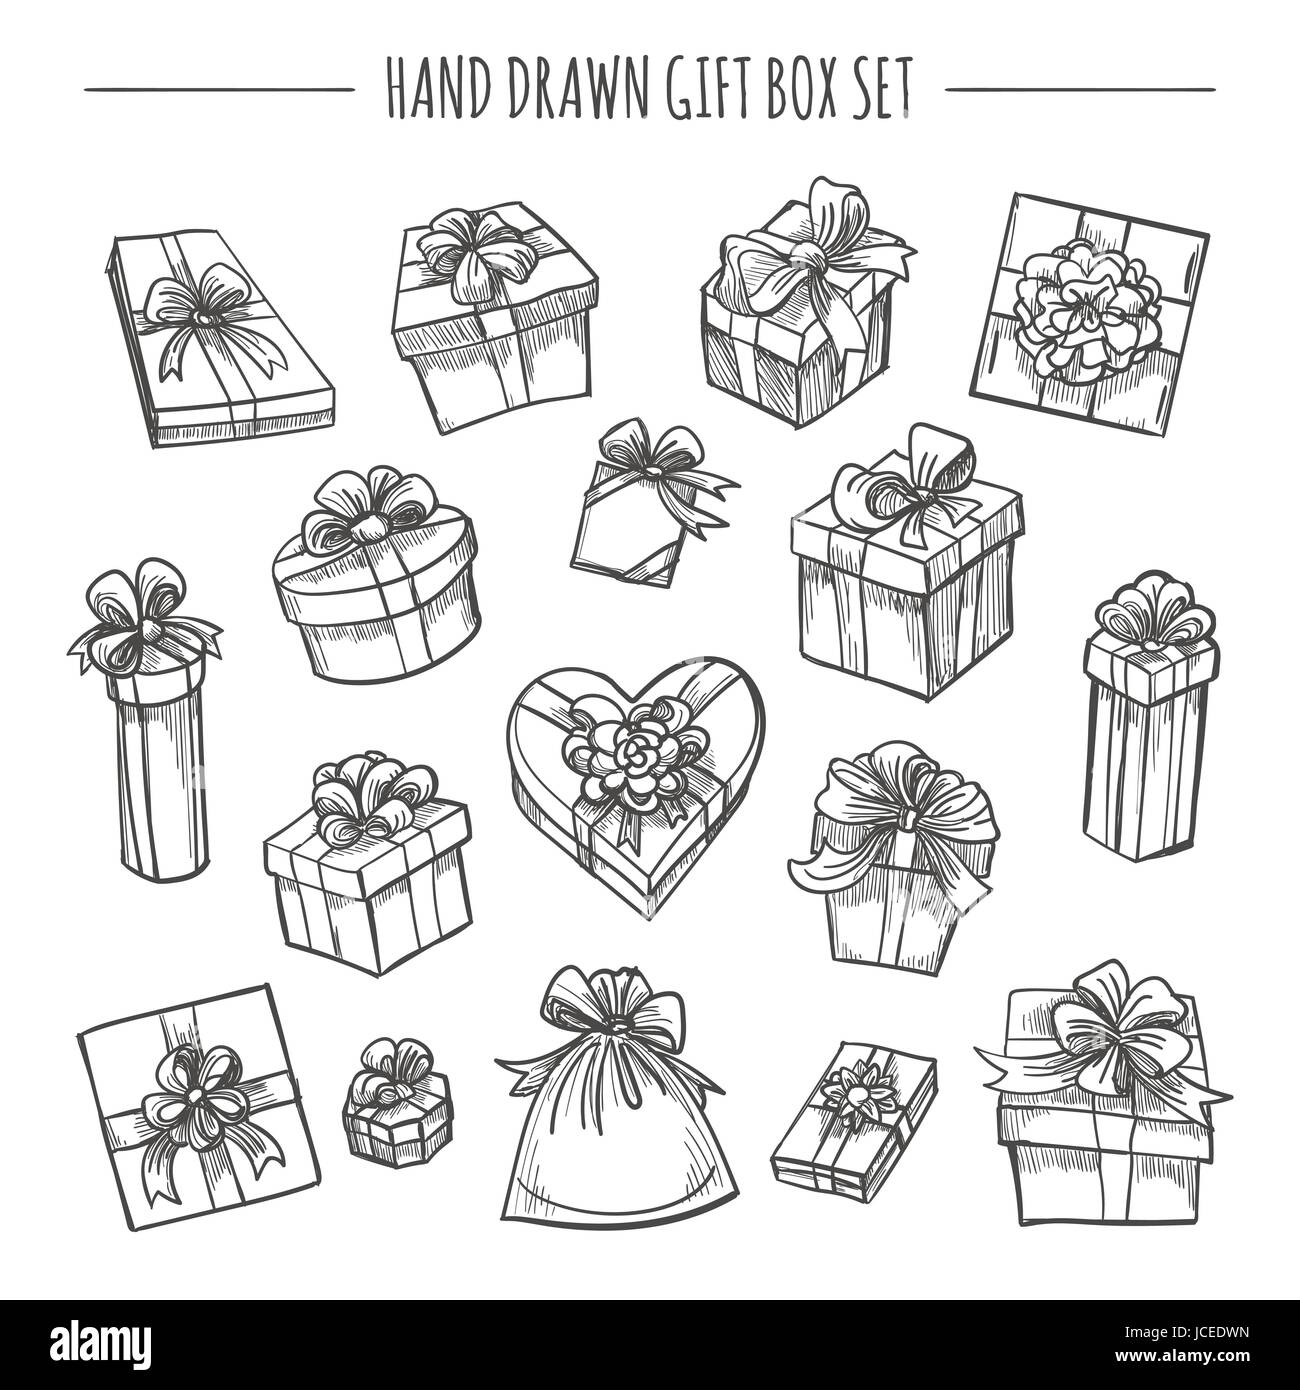 gift box set in hand drawn style sketch outline present boxes stock